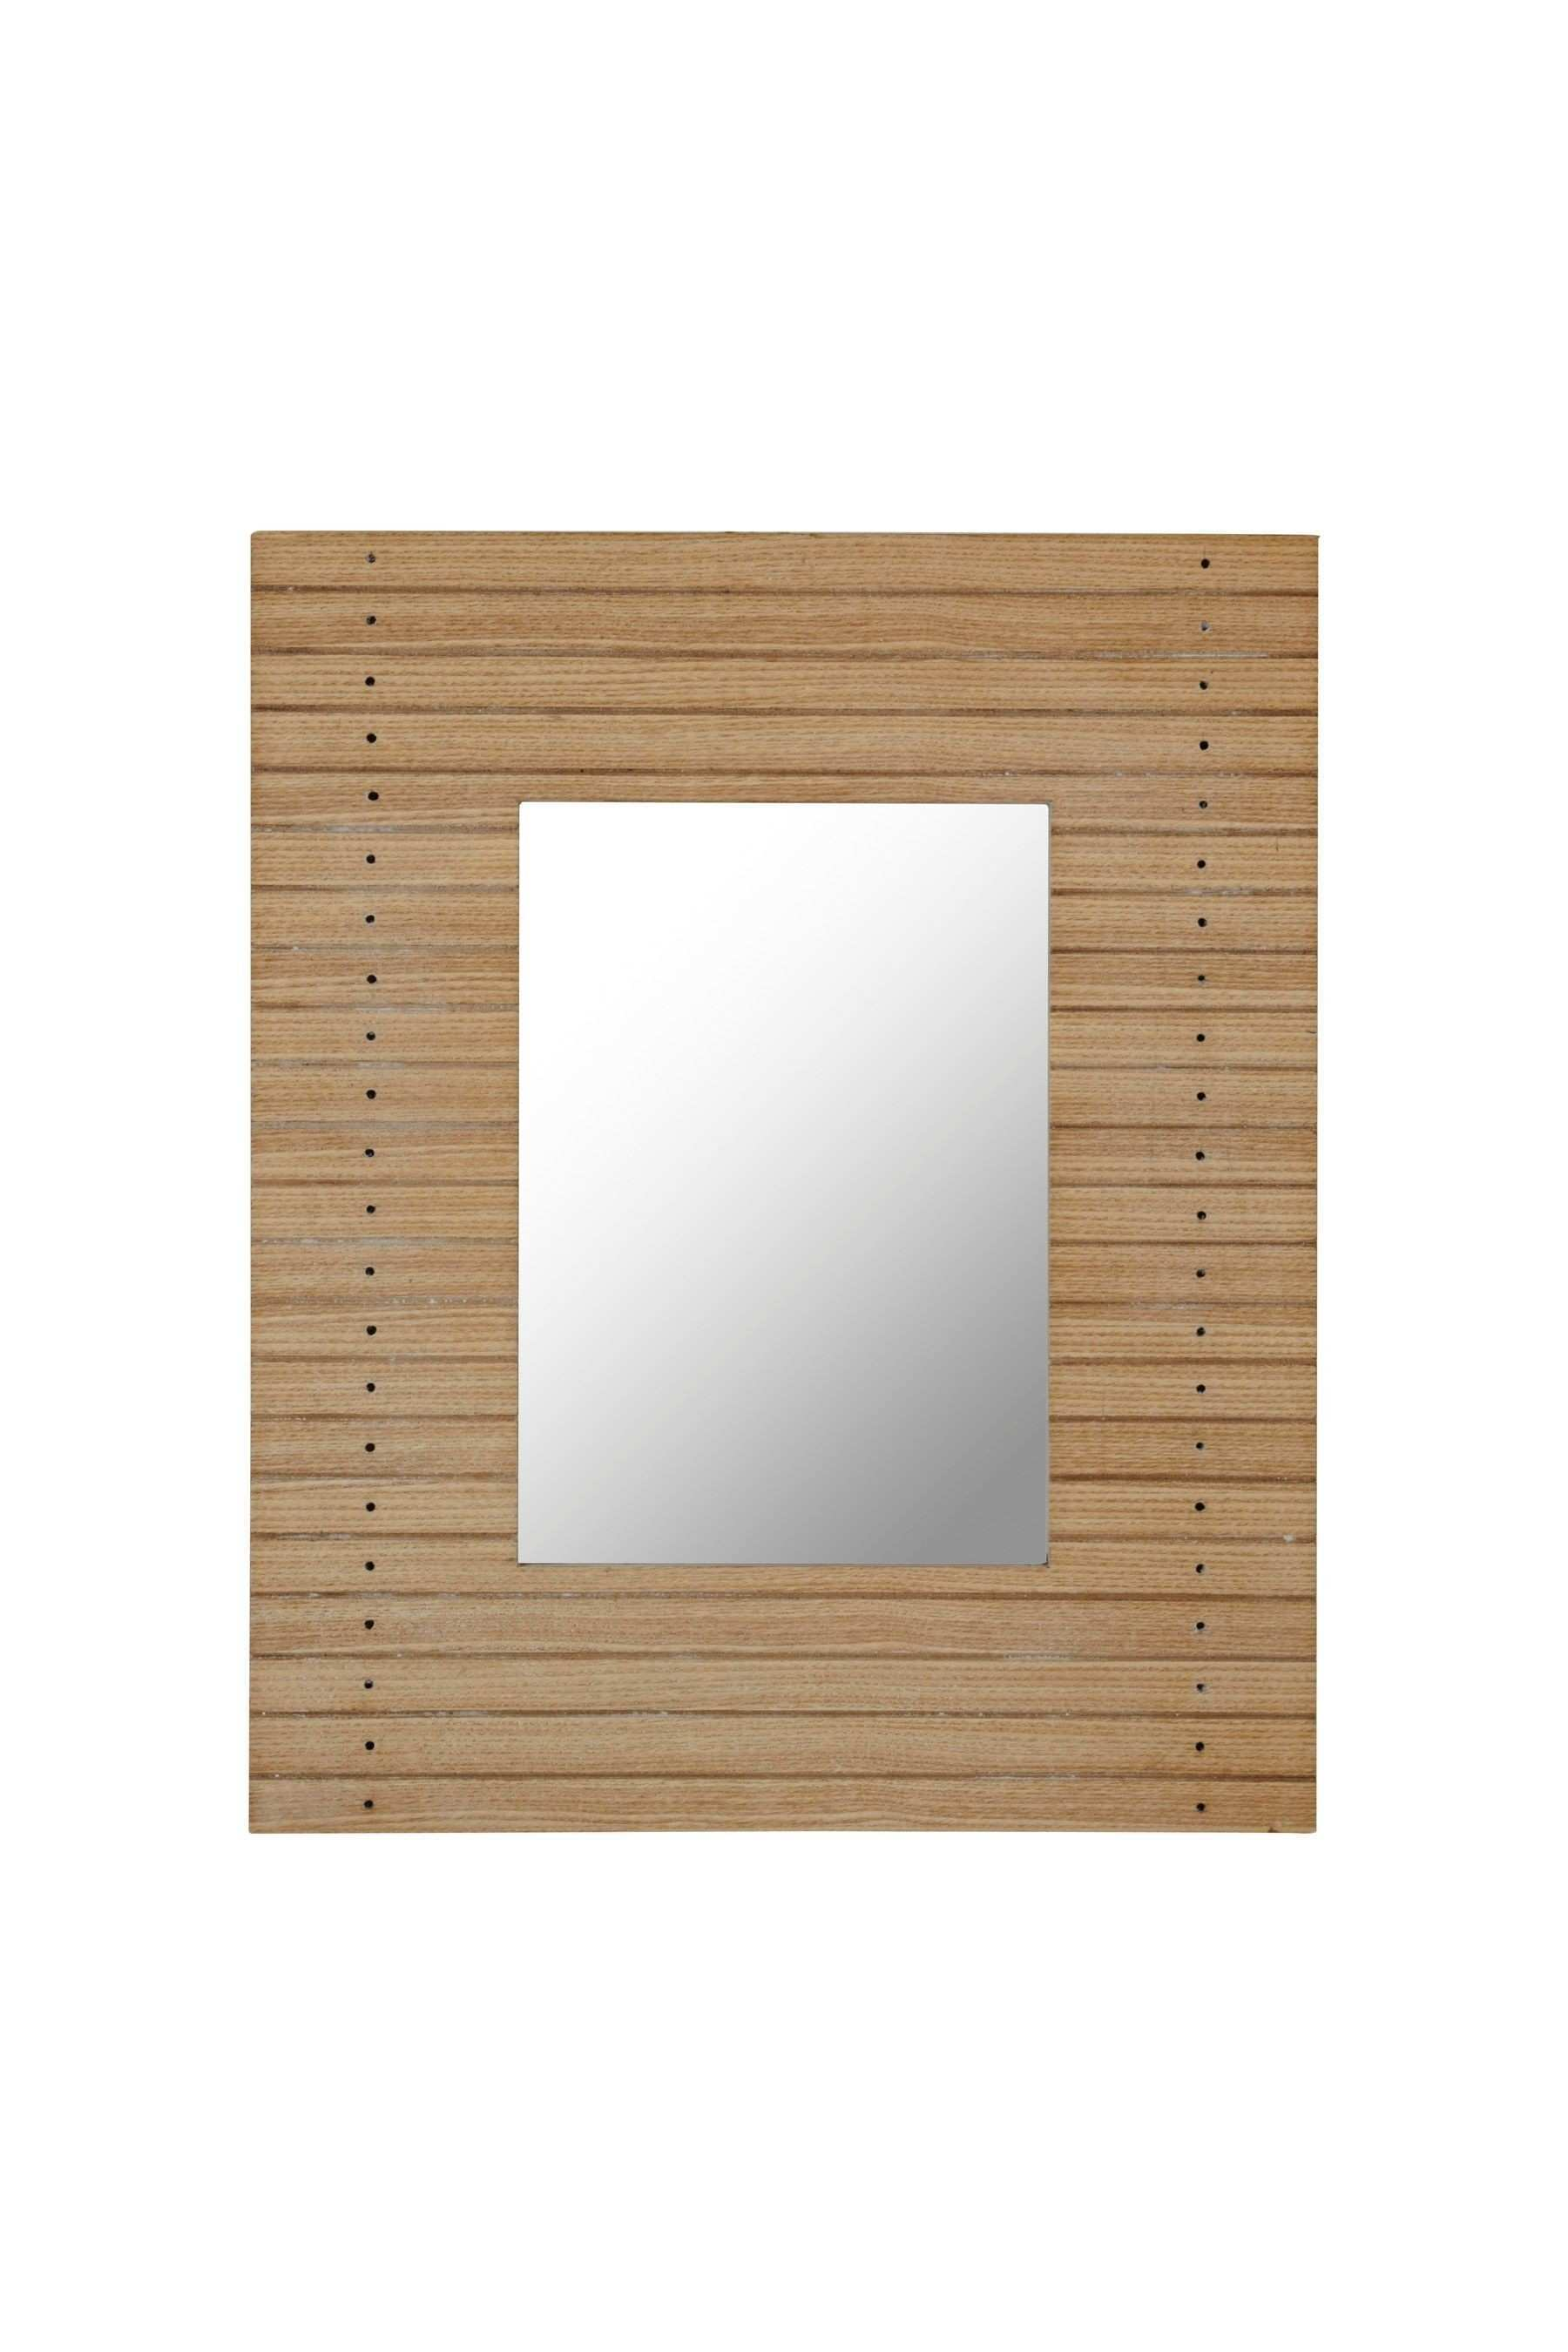 Buy Slat Wood Wall Mirror from the Next UK online shop